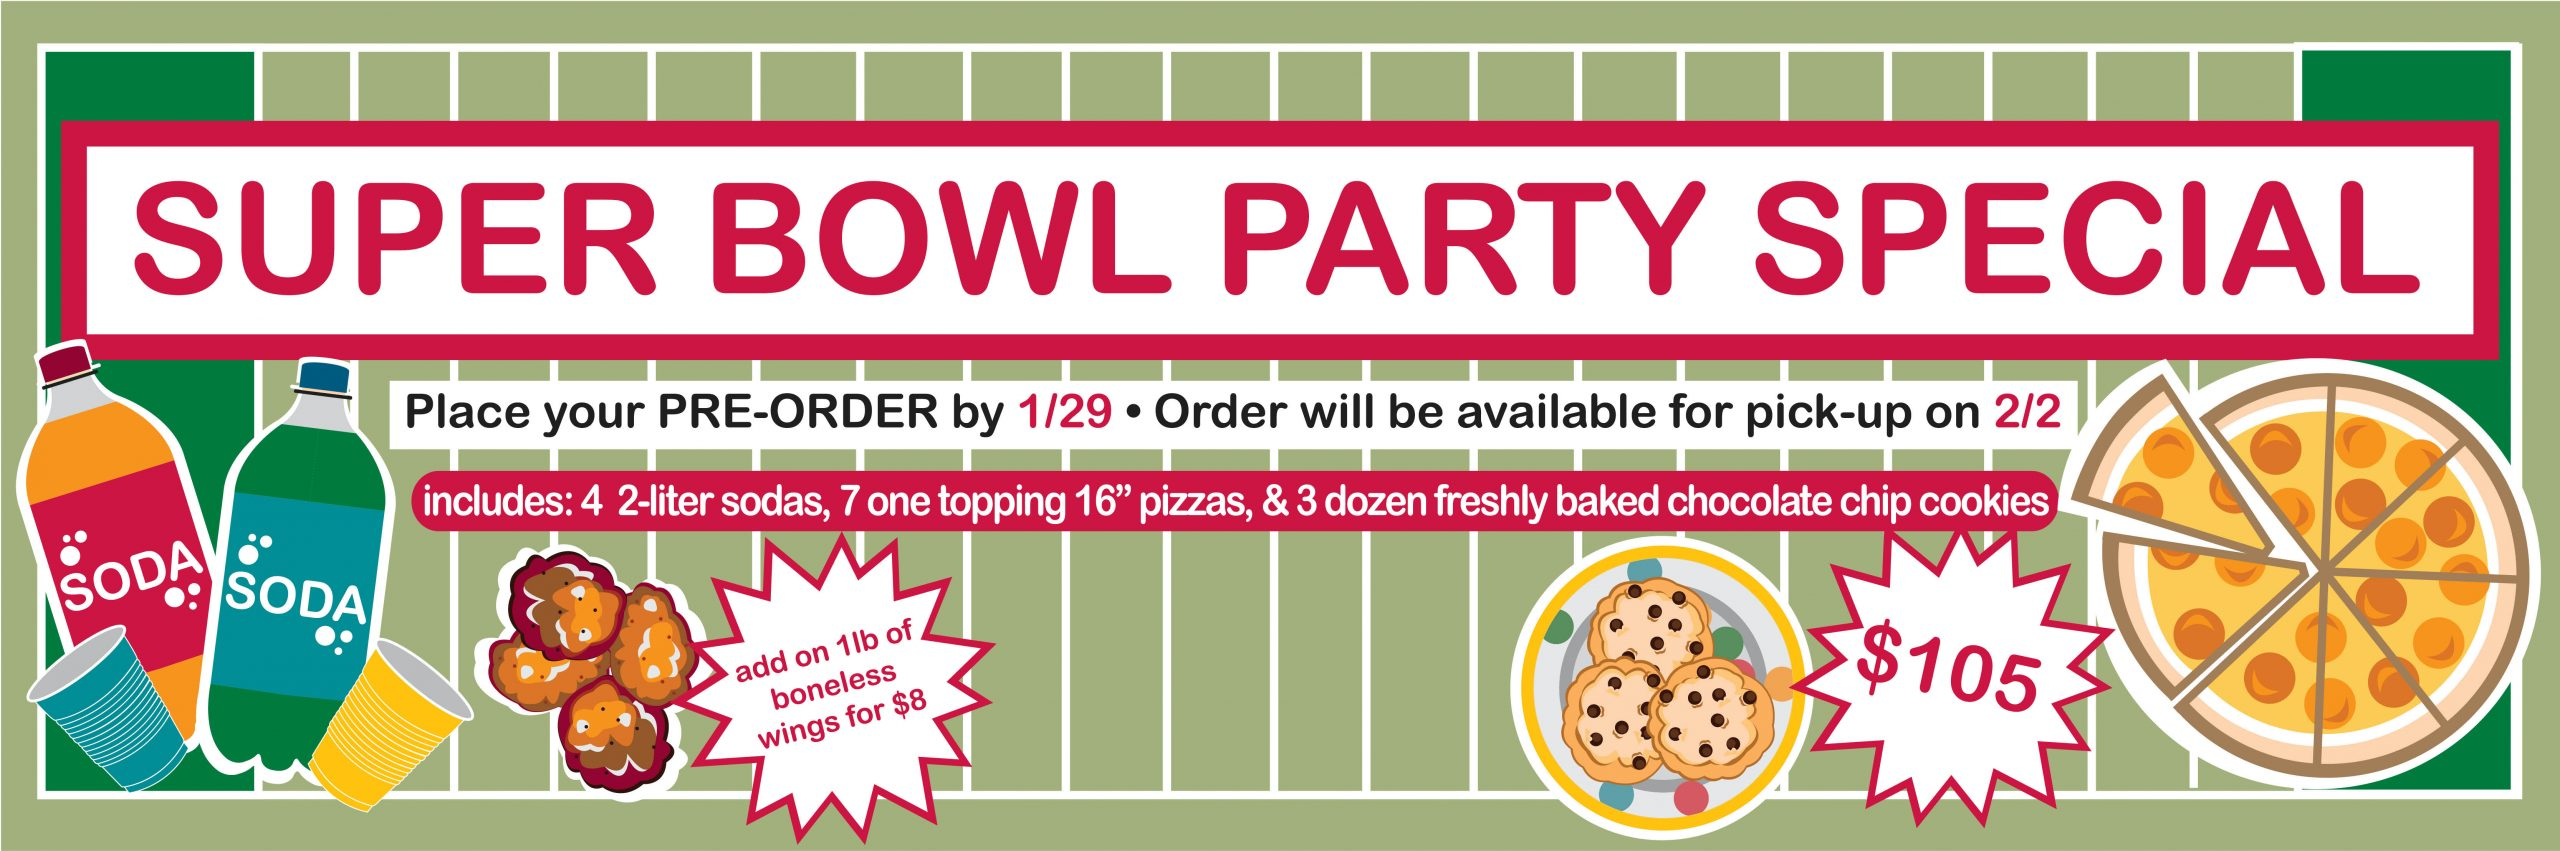 Super Bowl Pizza Party Special University Housing Uw Madison